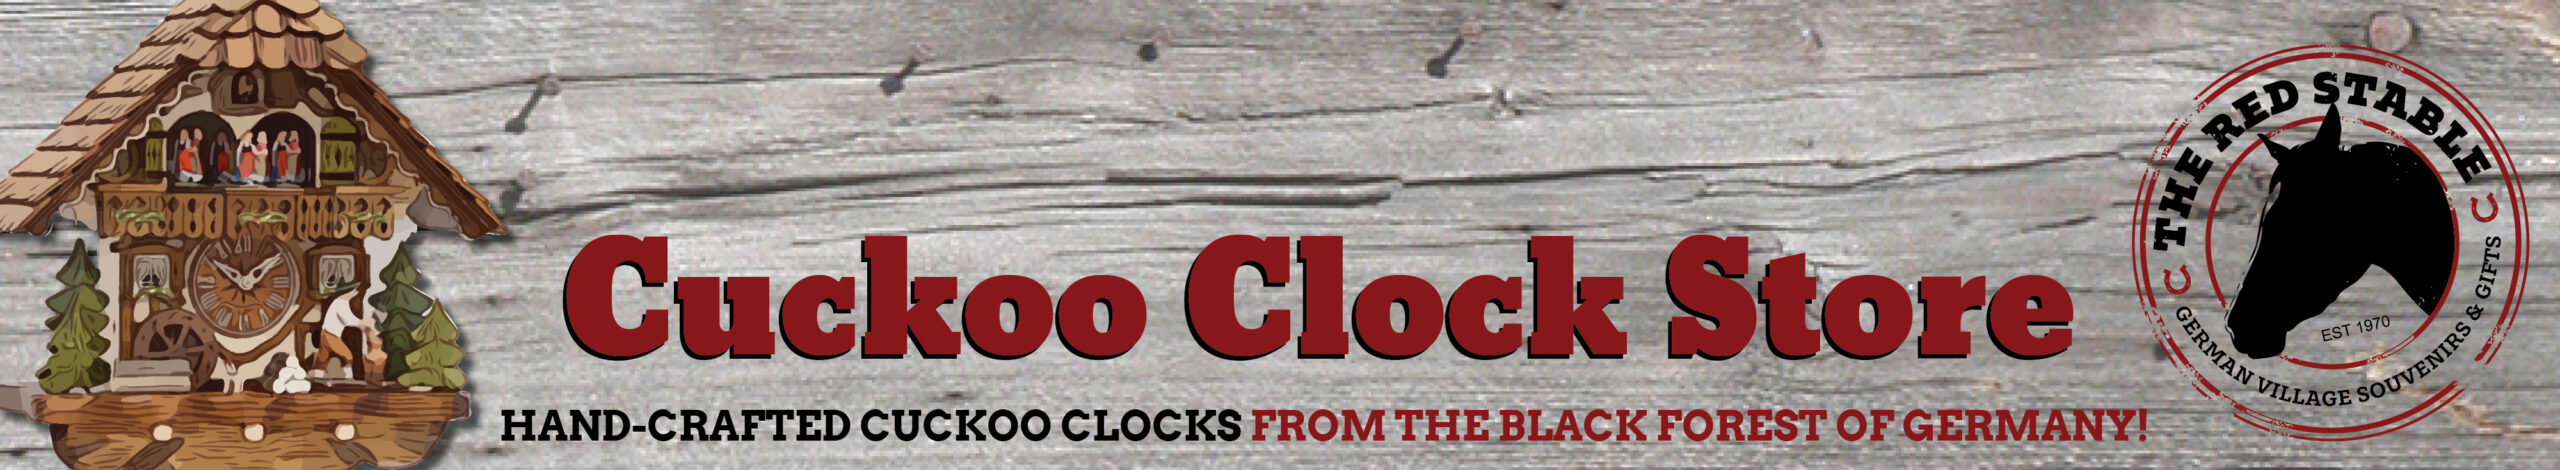 Cuckoo Clock Sale @theredstable